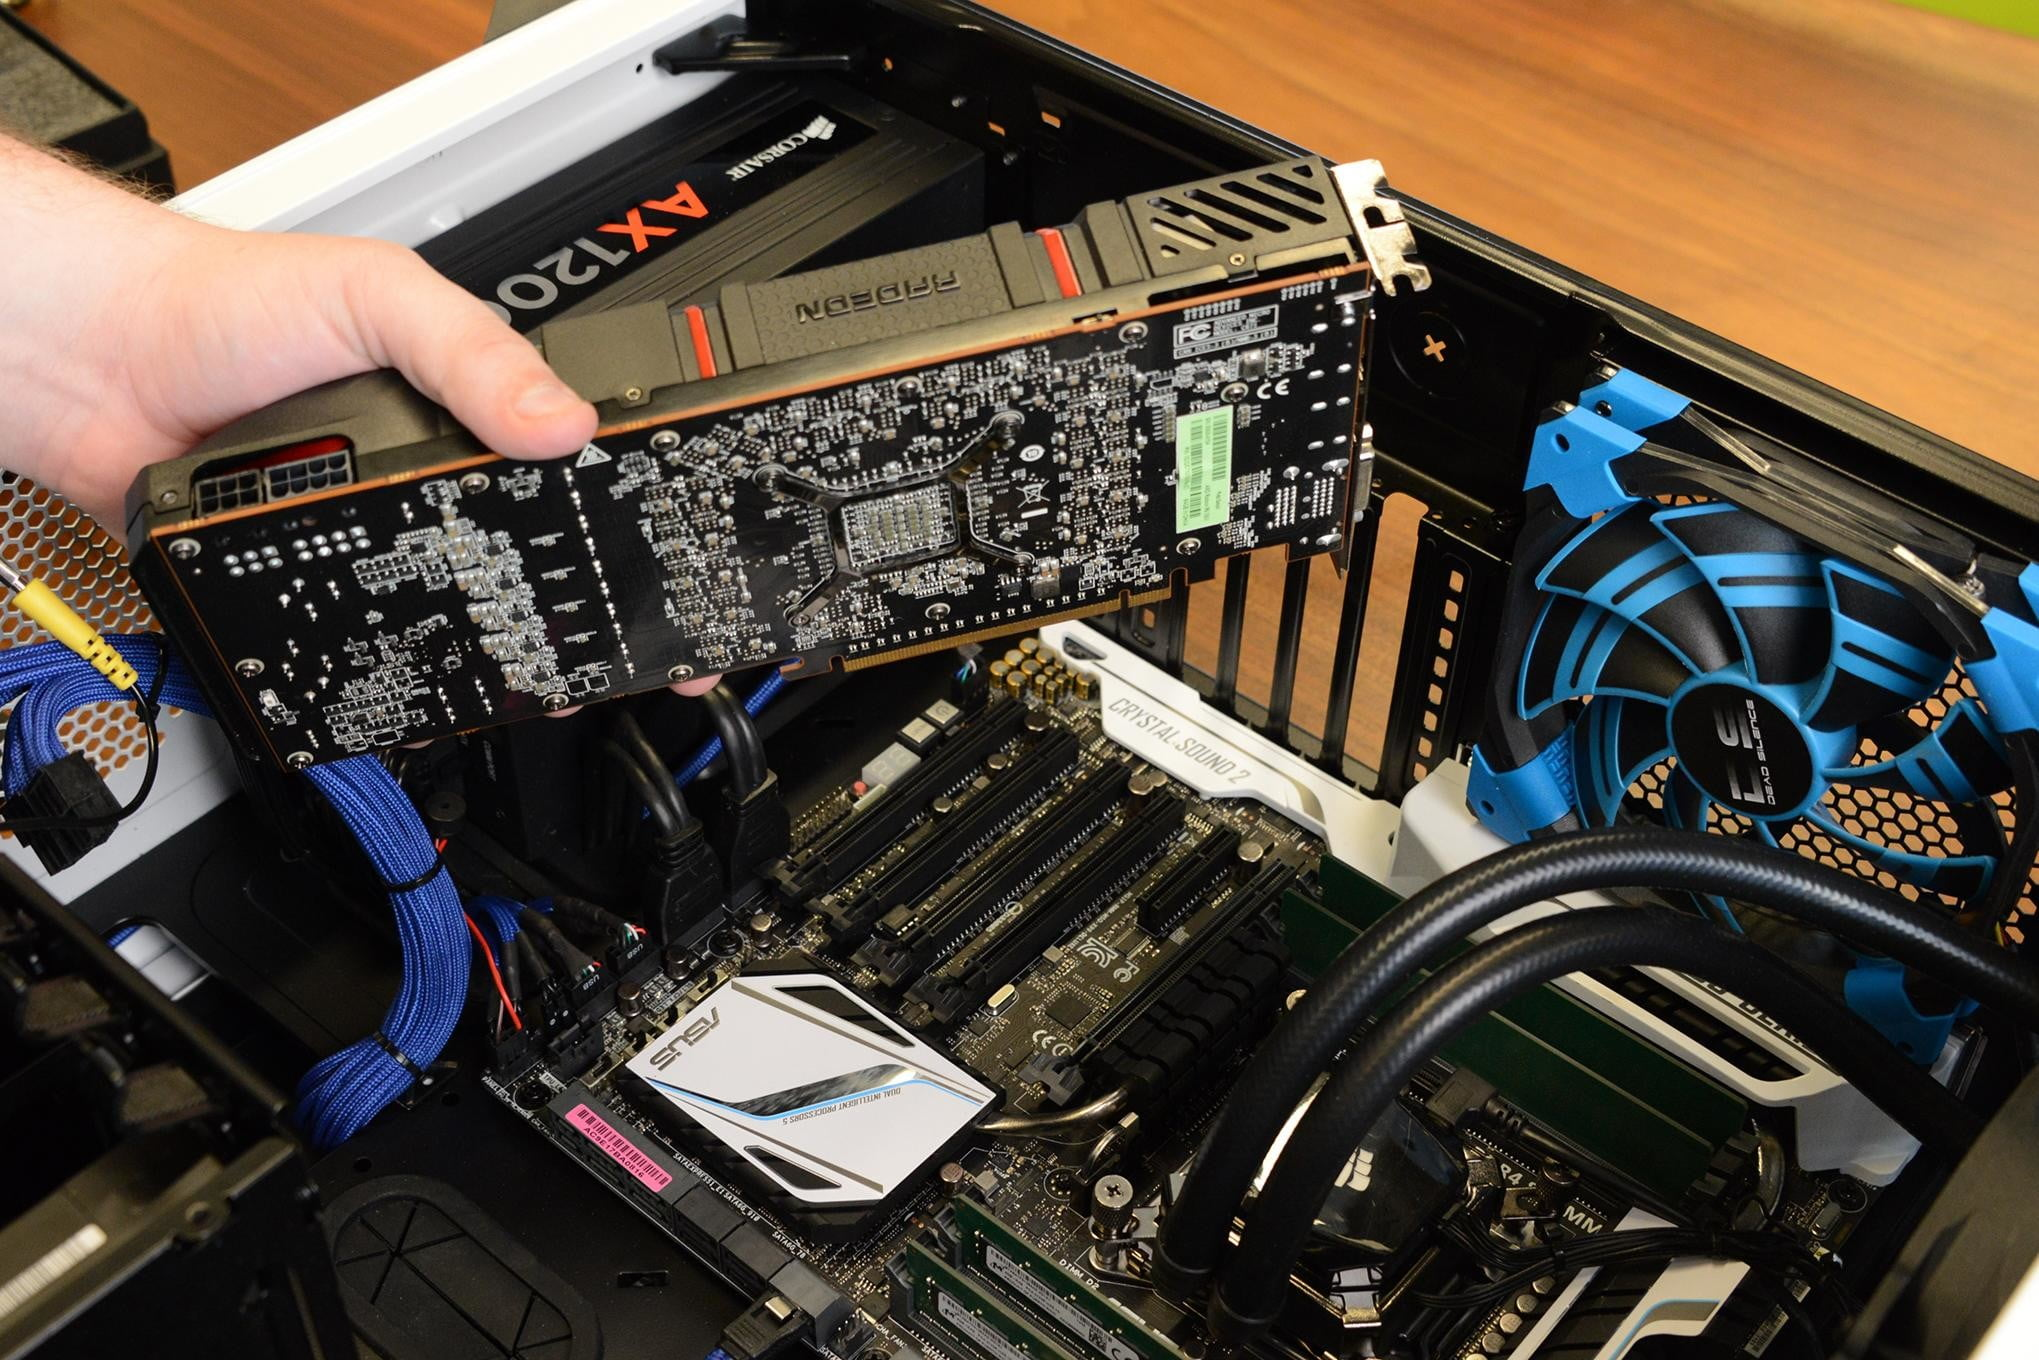 How To Install A Pc Graphics Card In Five Minutes Digital Trends Messages For Friends Images Diagram Of Motherboard With Labels